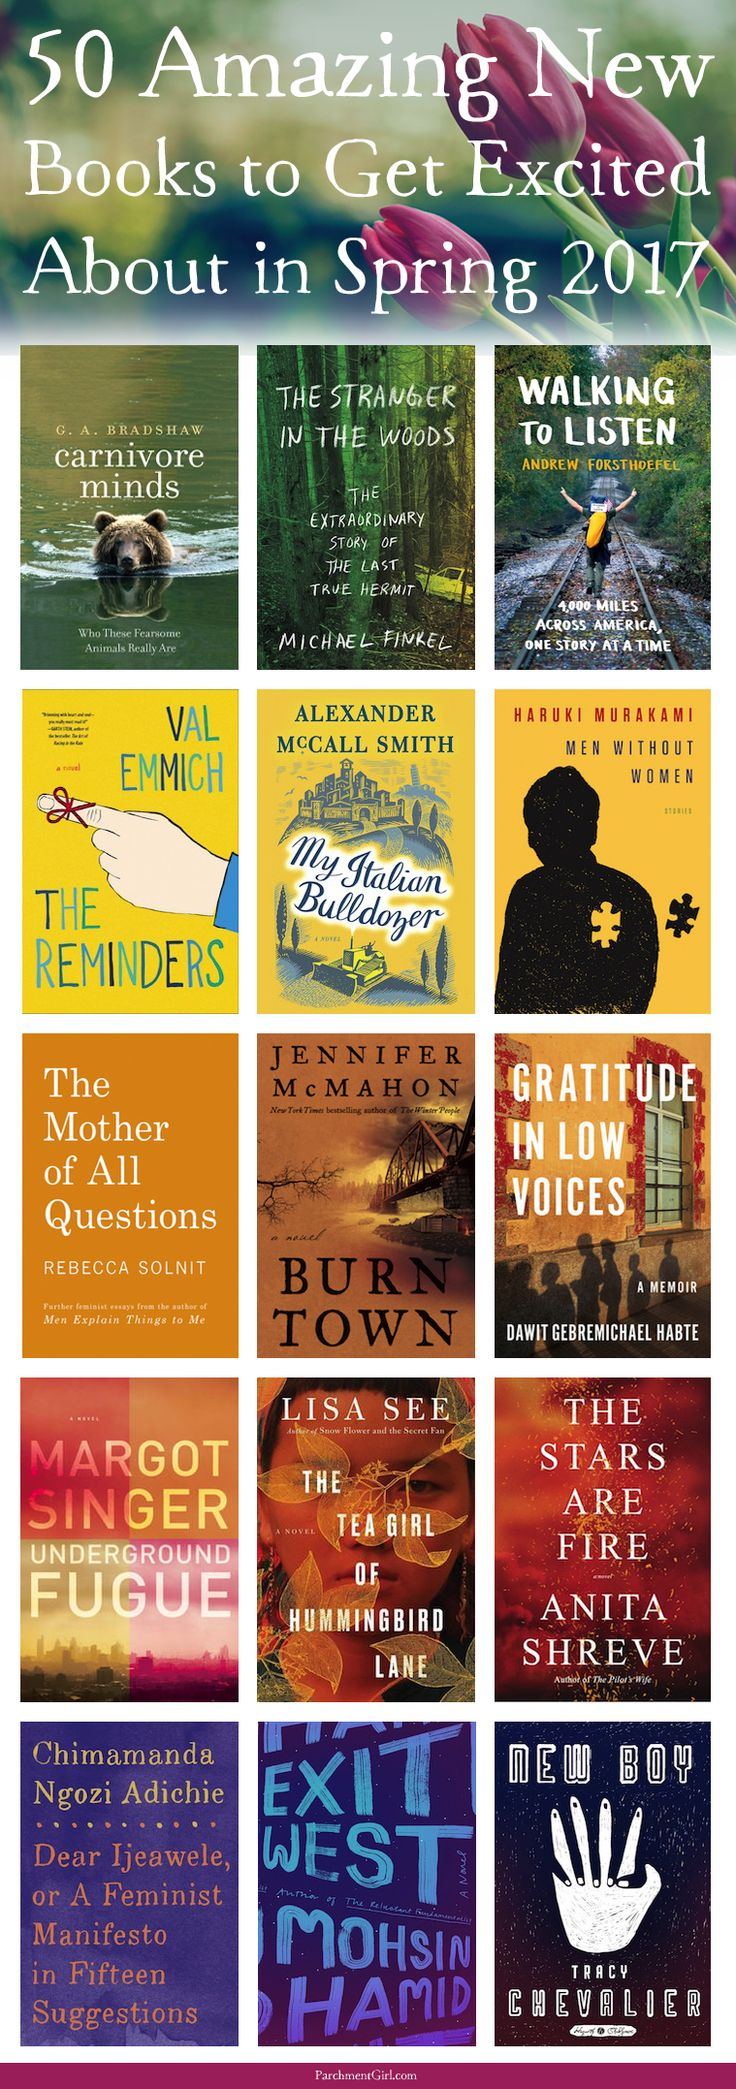 53 Amazing New Books to Look Forward to This Spring by Joan Didion, David McCullough, Lisa See, Anita Shreve, Elizabeth Strout, Paula Hawkins, Chimamanda Ngozi Adichie, + more!